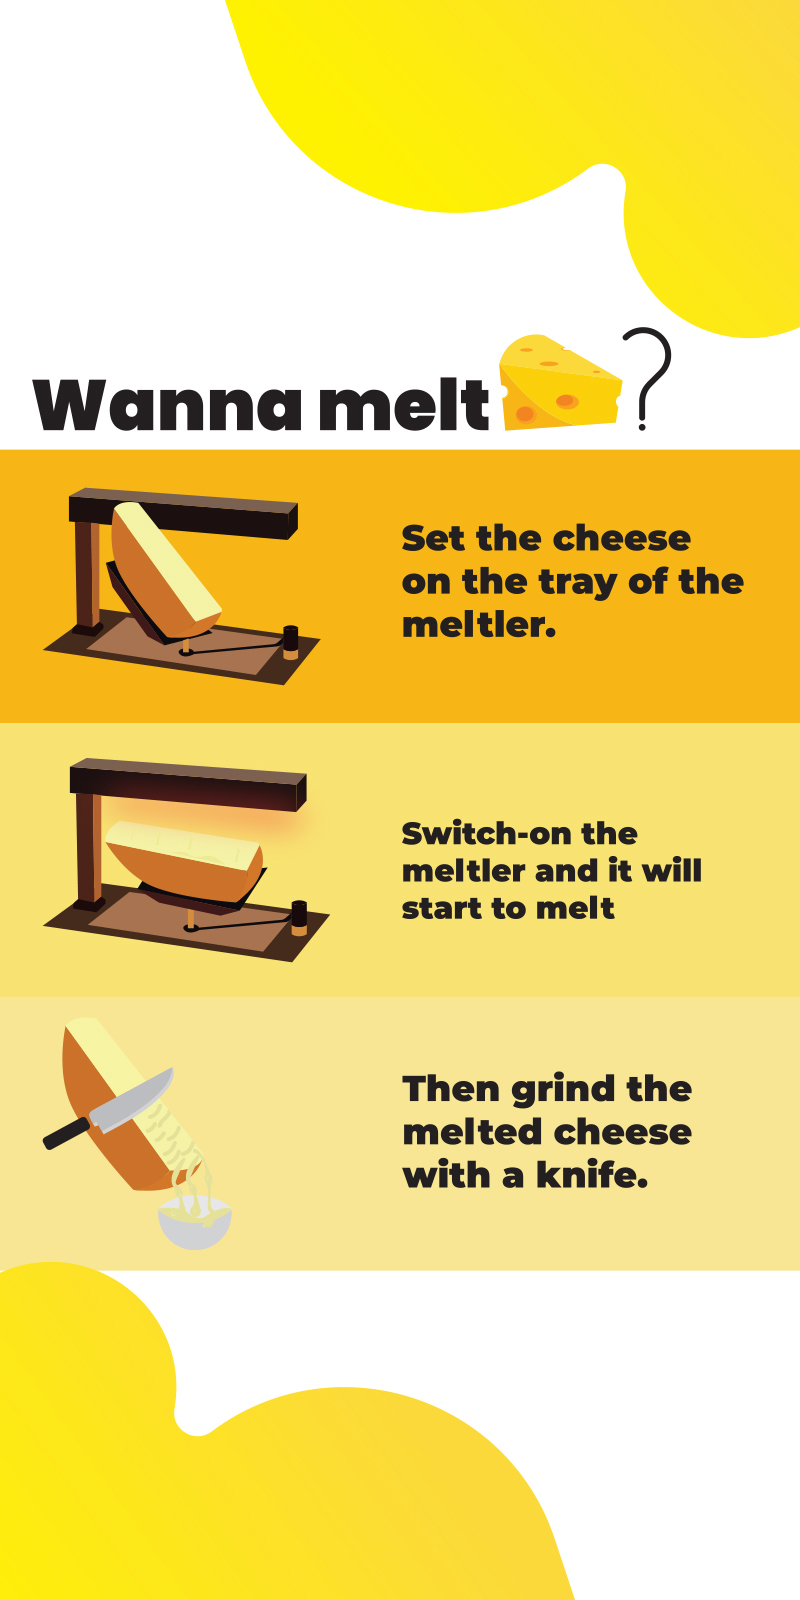 How to melt cheese in raclette cheese melter?